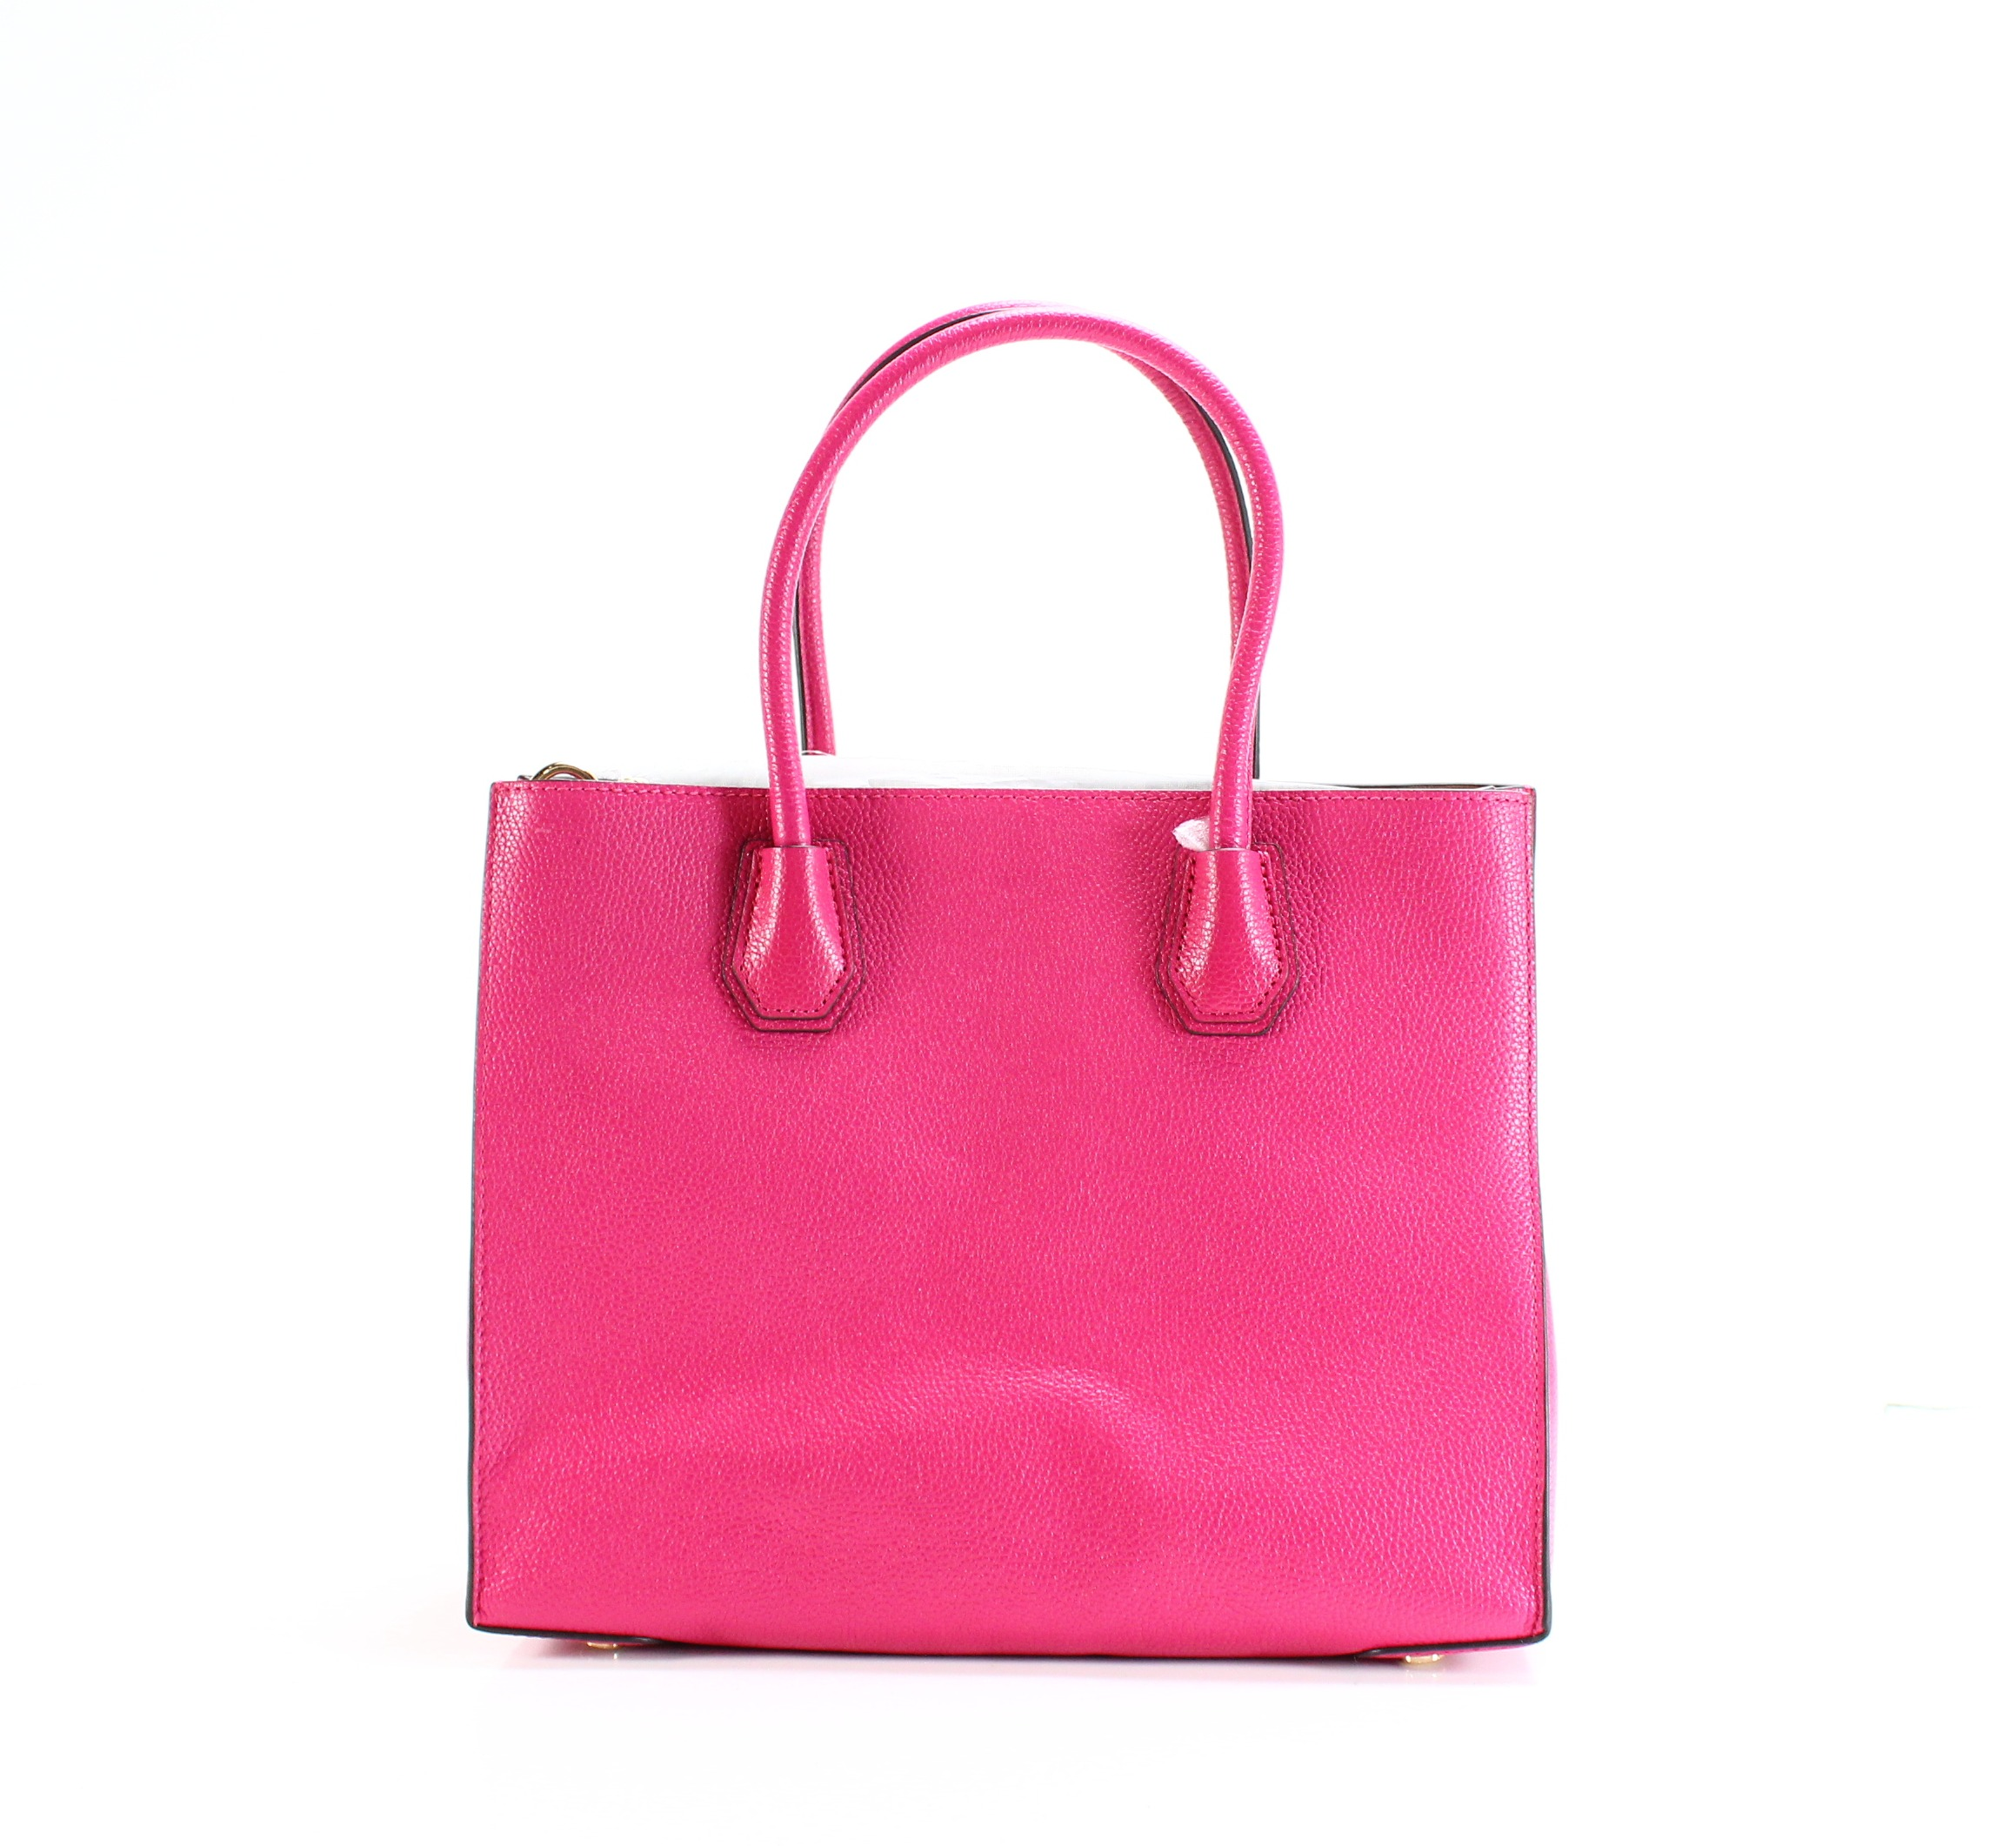 6fb8f37a3c Michael Kors NEW Ultra Pink Mercer Large Convertible Tote Leather ...